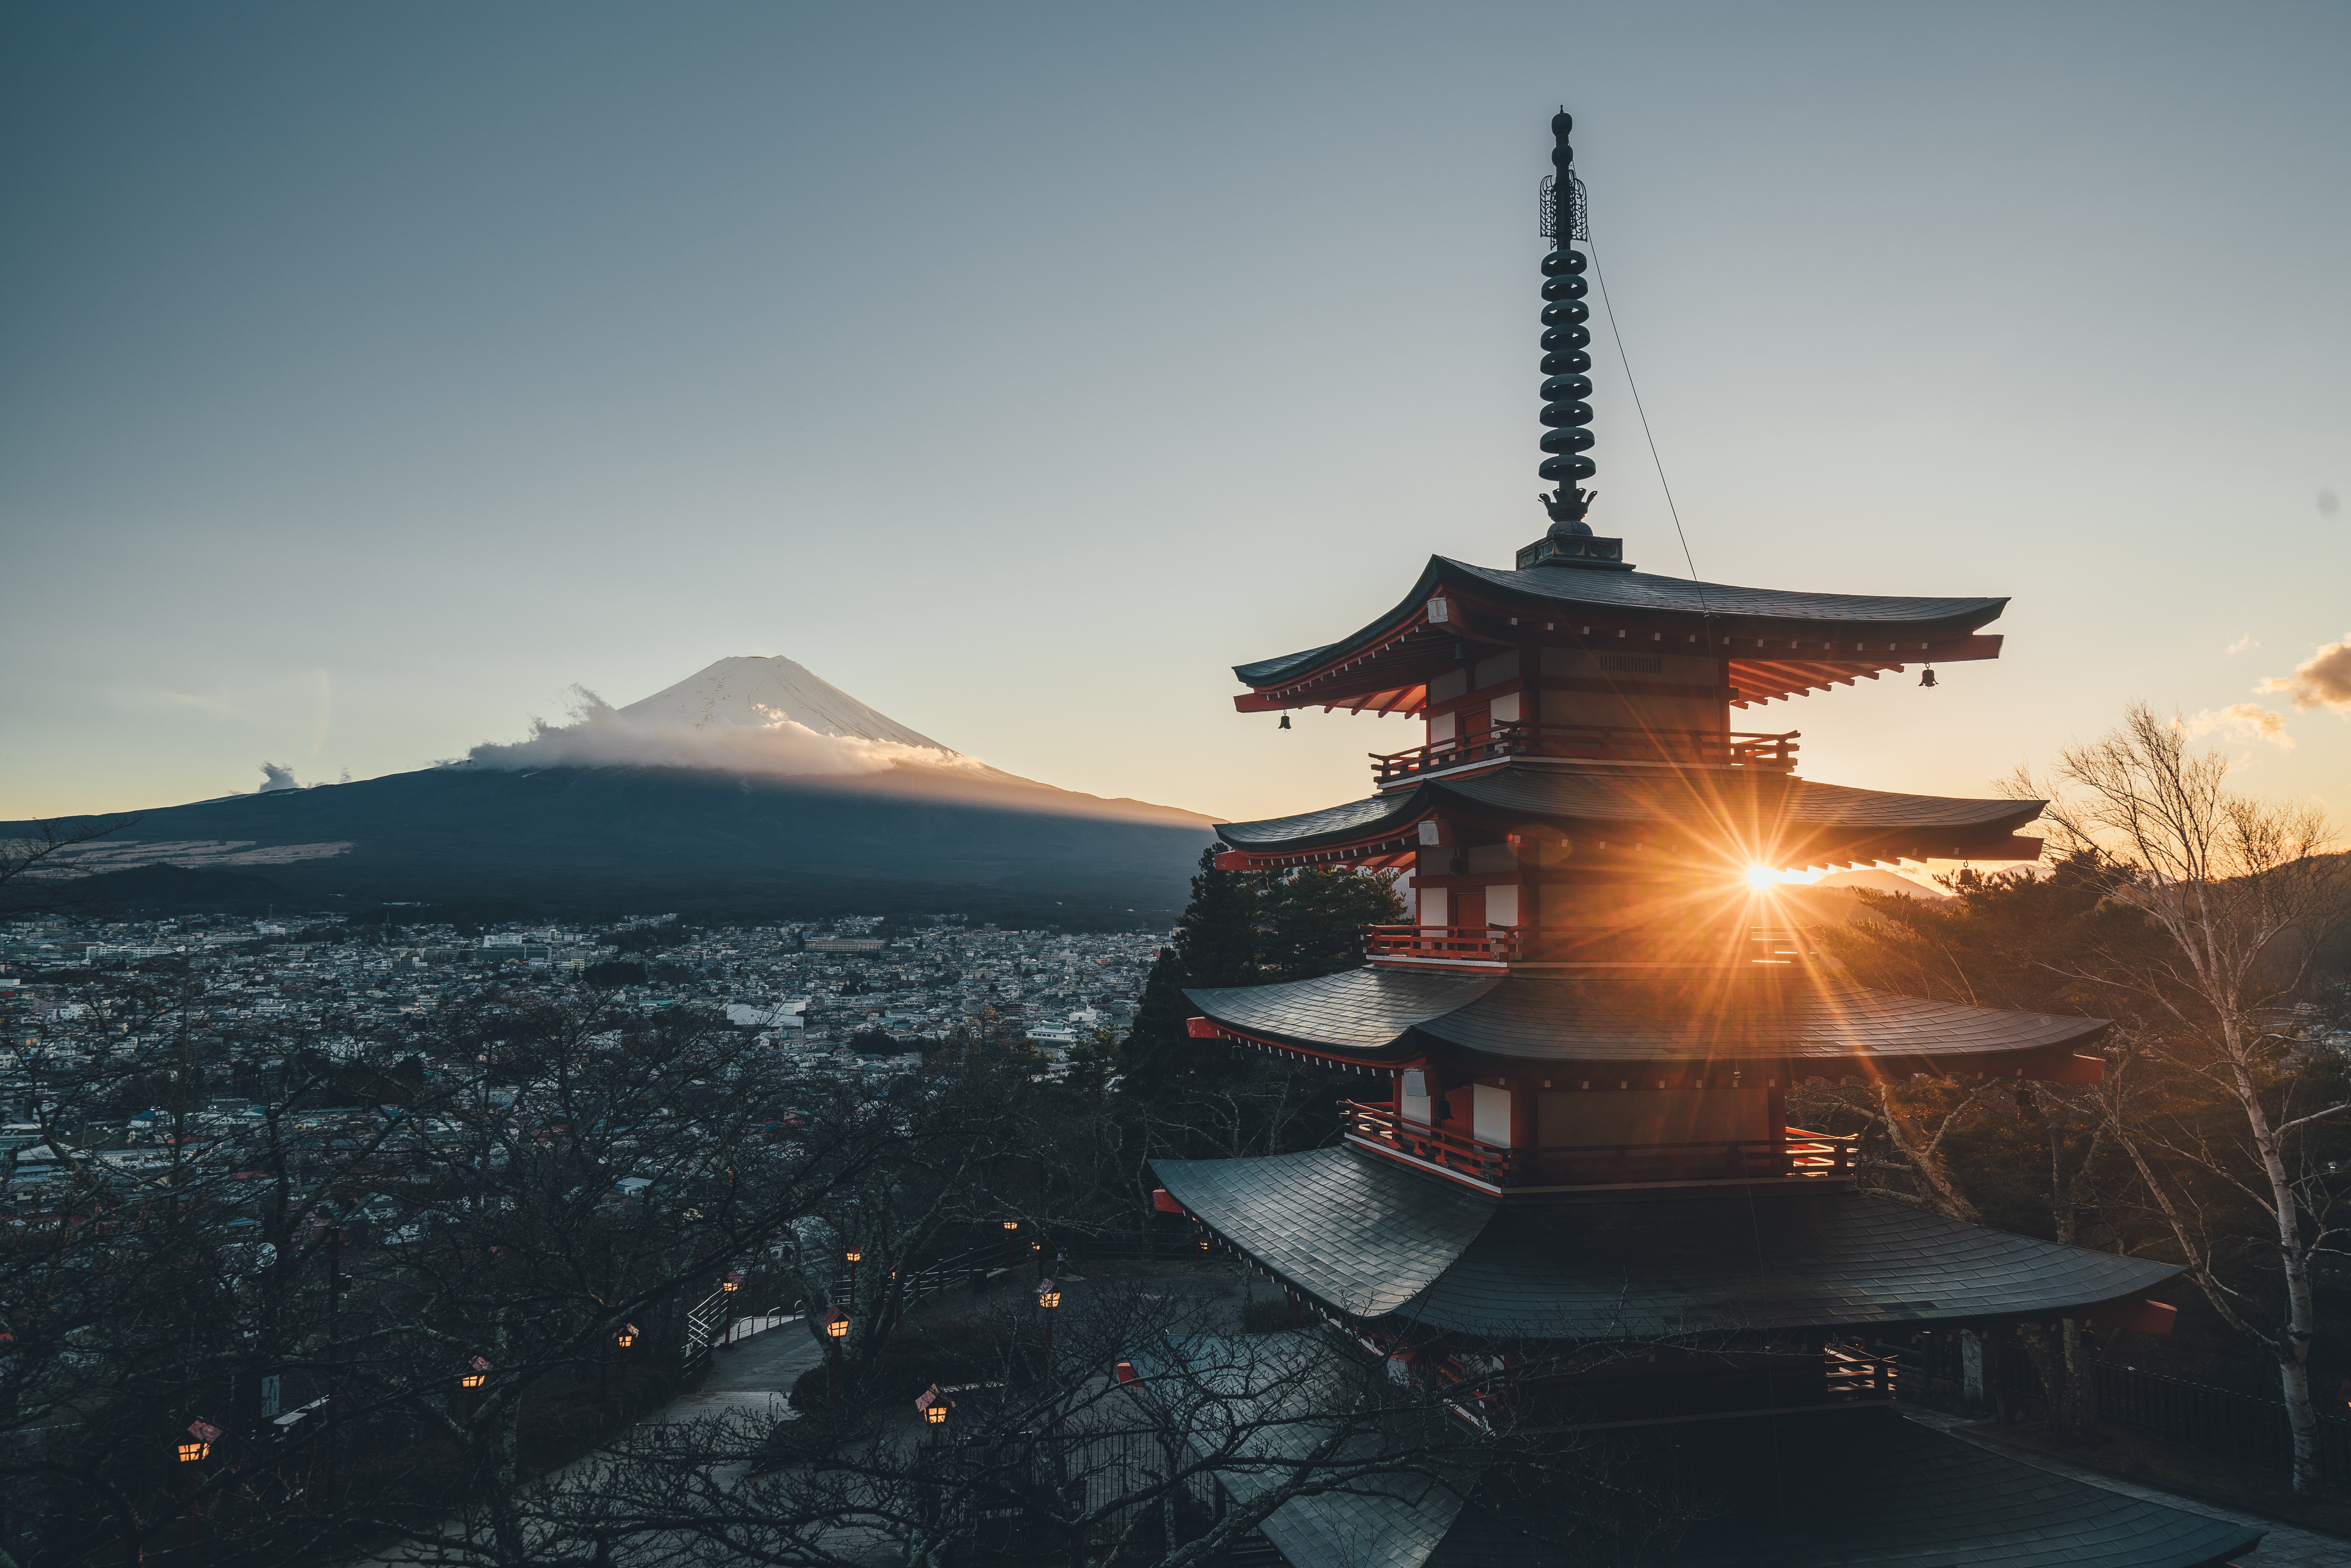 115588 download wallpaper Japan, Cities, Architecture, Pagoda, Sunlight screensavers and pictures for free